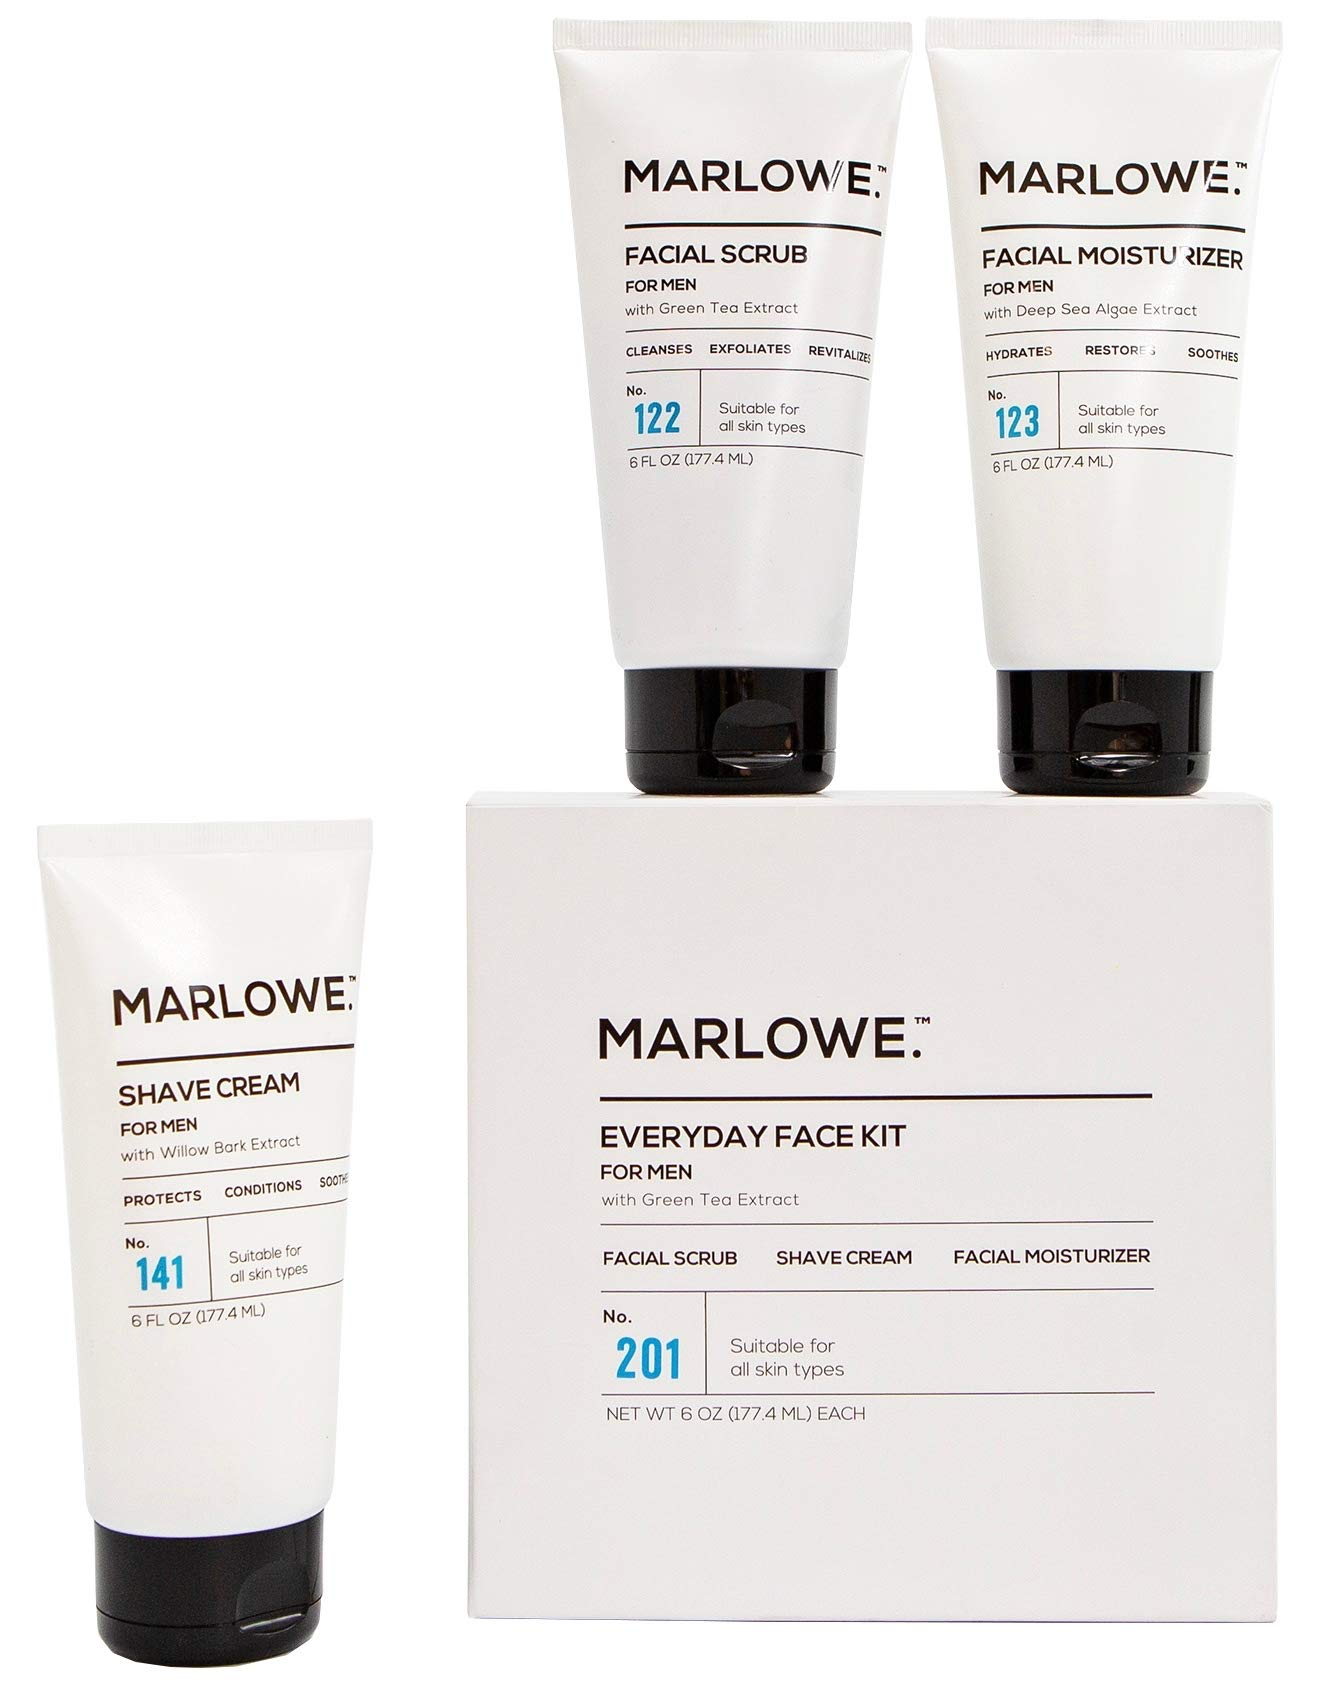 MARLOWE. No. 201 Everyday Face Kit for Men | Men's Skincare Gift Starter Set | Daily Face Scrub, Moisturizer, Shave Cream | Exfoliating Wash, Lotion, Shave Pack with Green Tea Extract | Great Gift